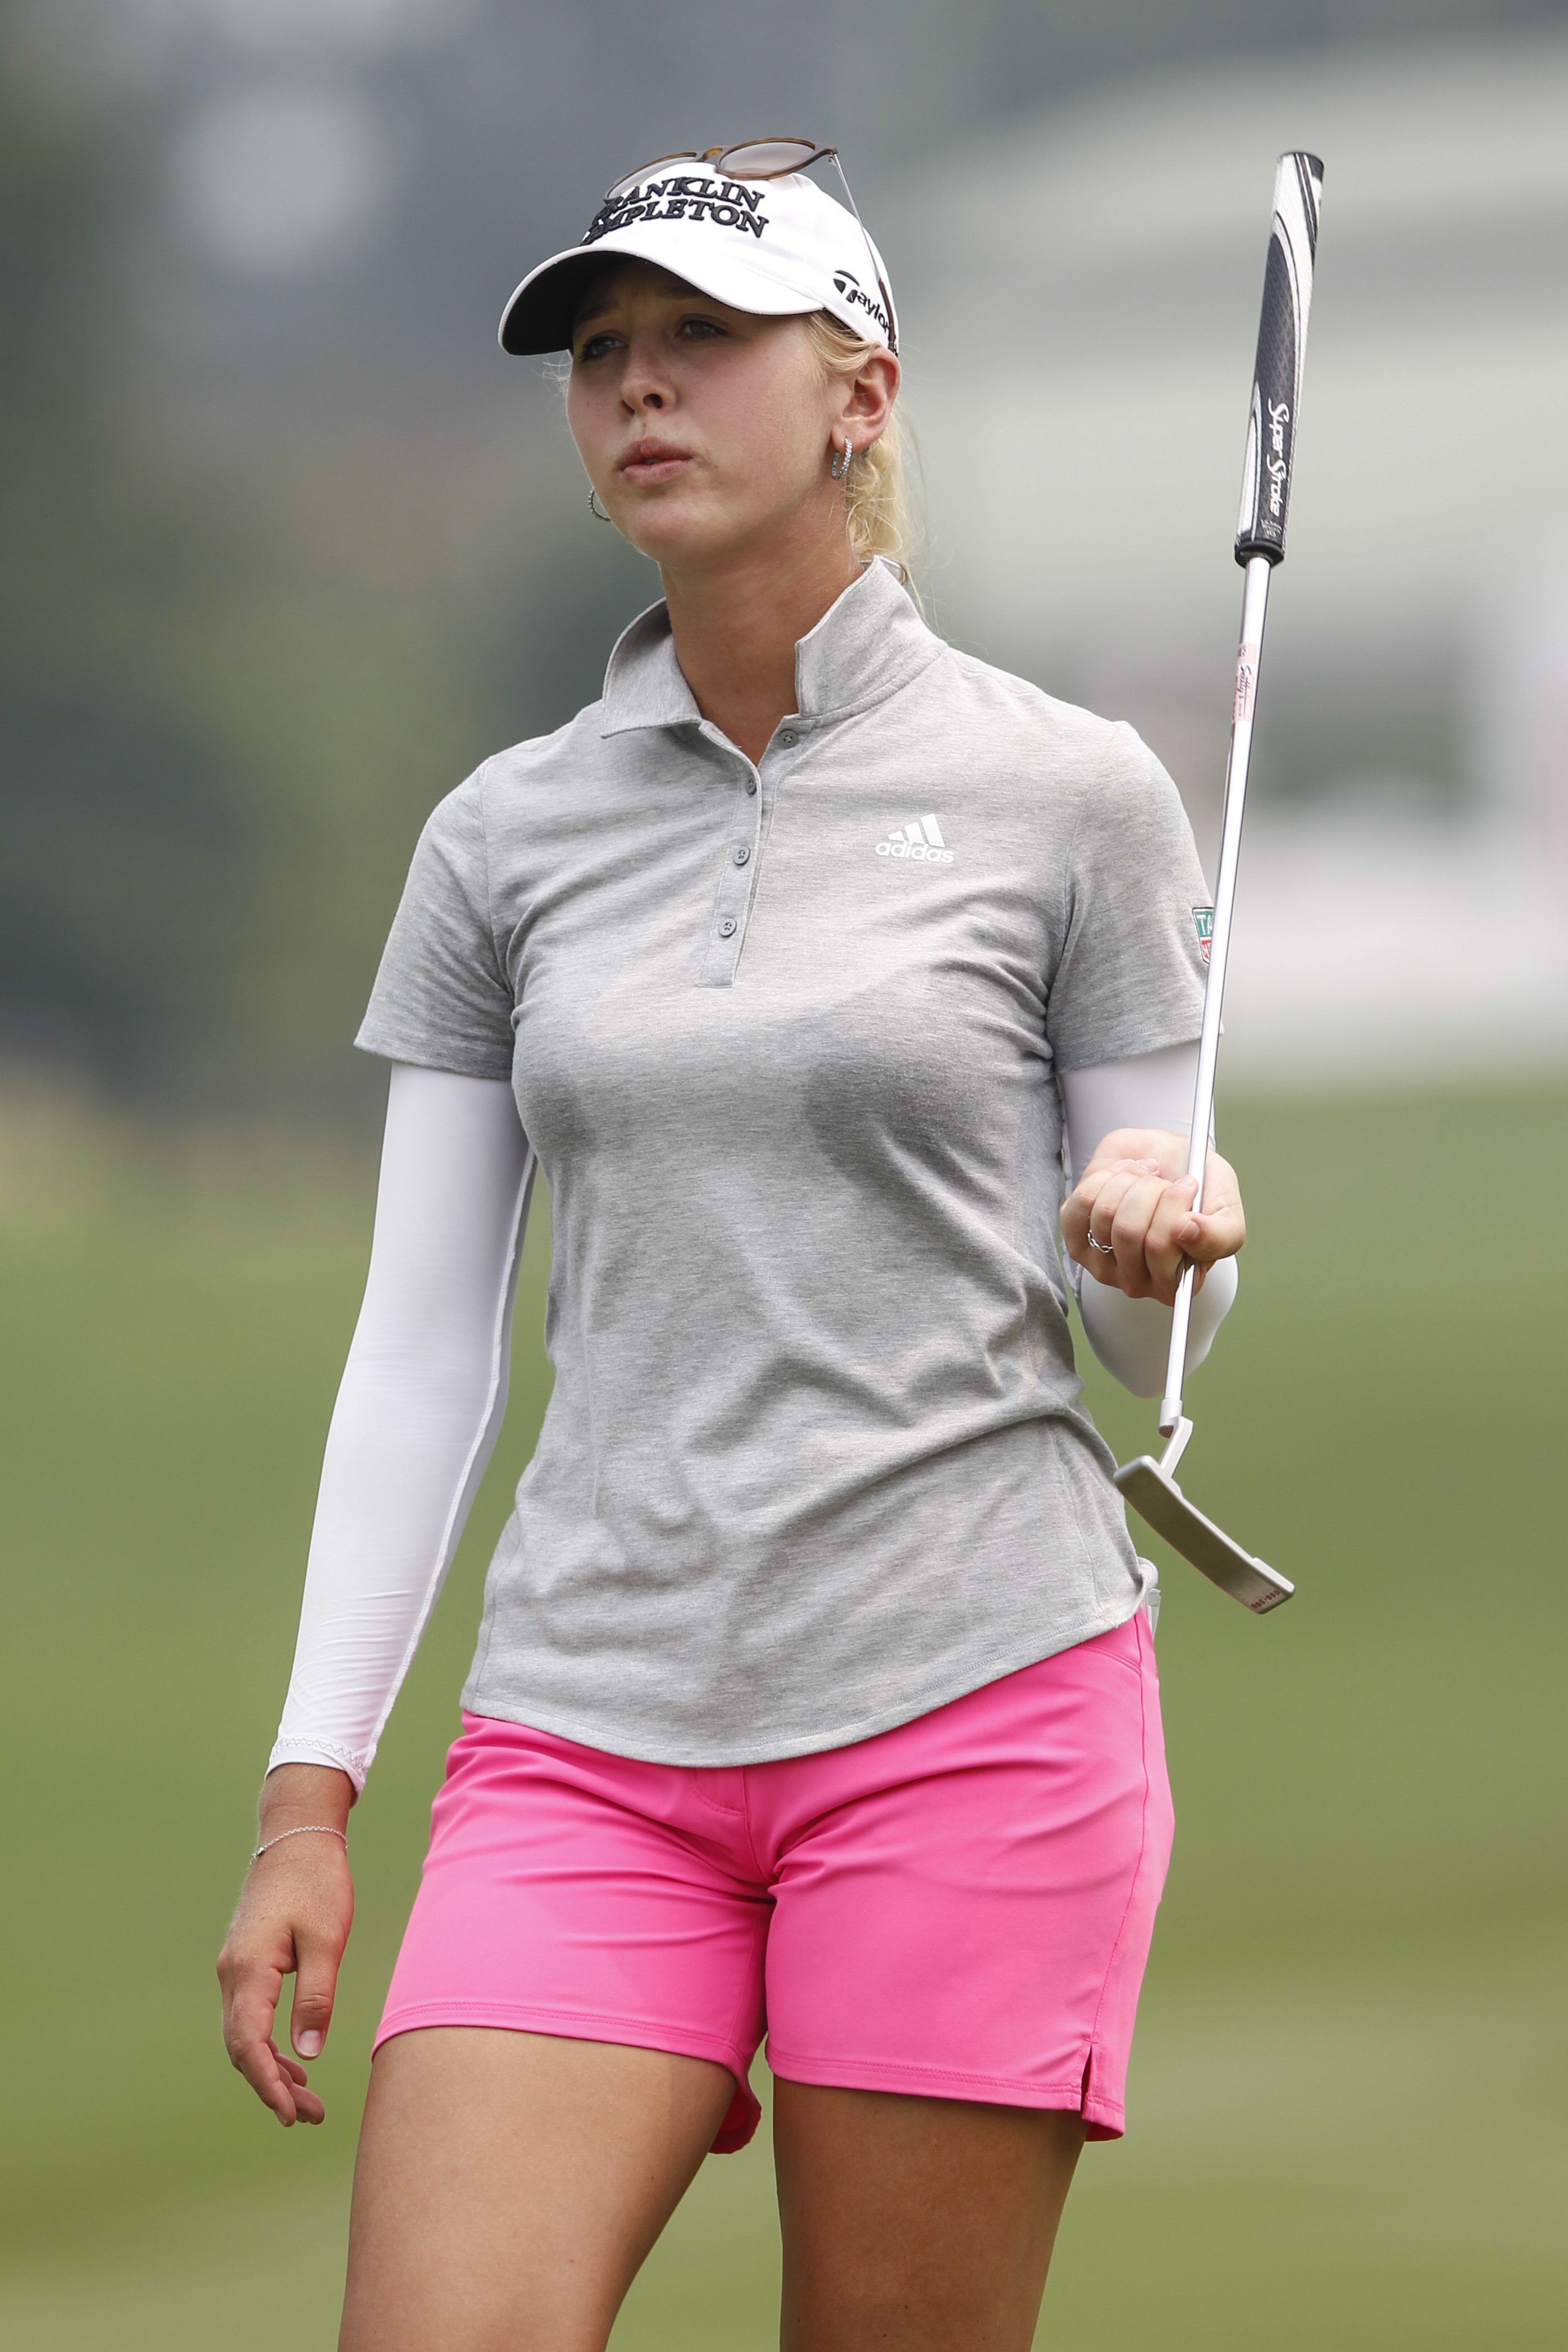 Jessica Korda of the United States swings her putter as she walks towards the 18th green during the third round of the LPGA Malaysia golf tournament at Kuala Lumpur Golf and Country Club in Kuala Lumpur, Malaysia, Saturday, Oct. 10, 2015. (AP Photo/Joshua